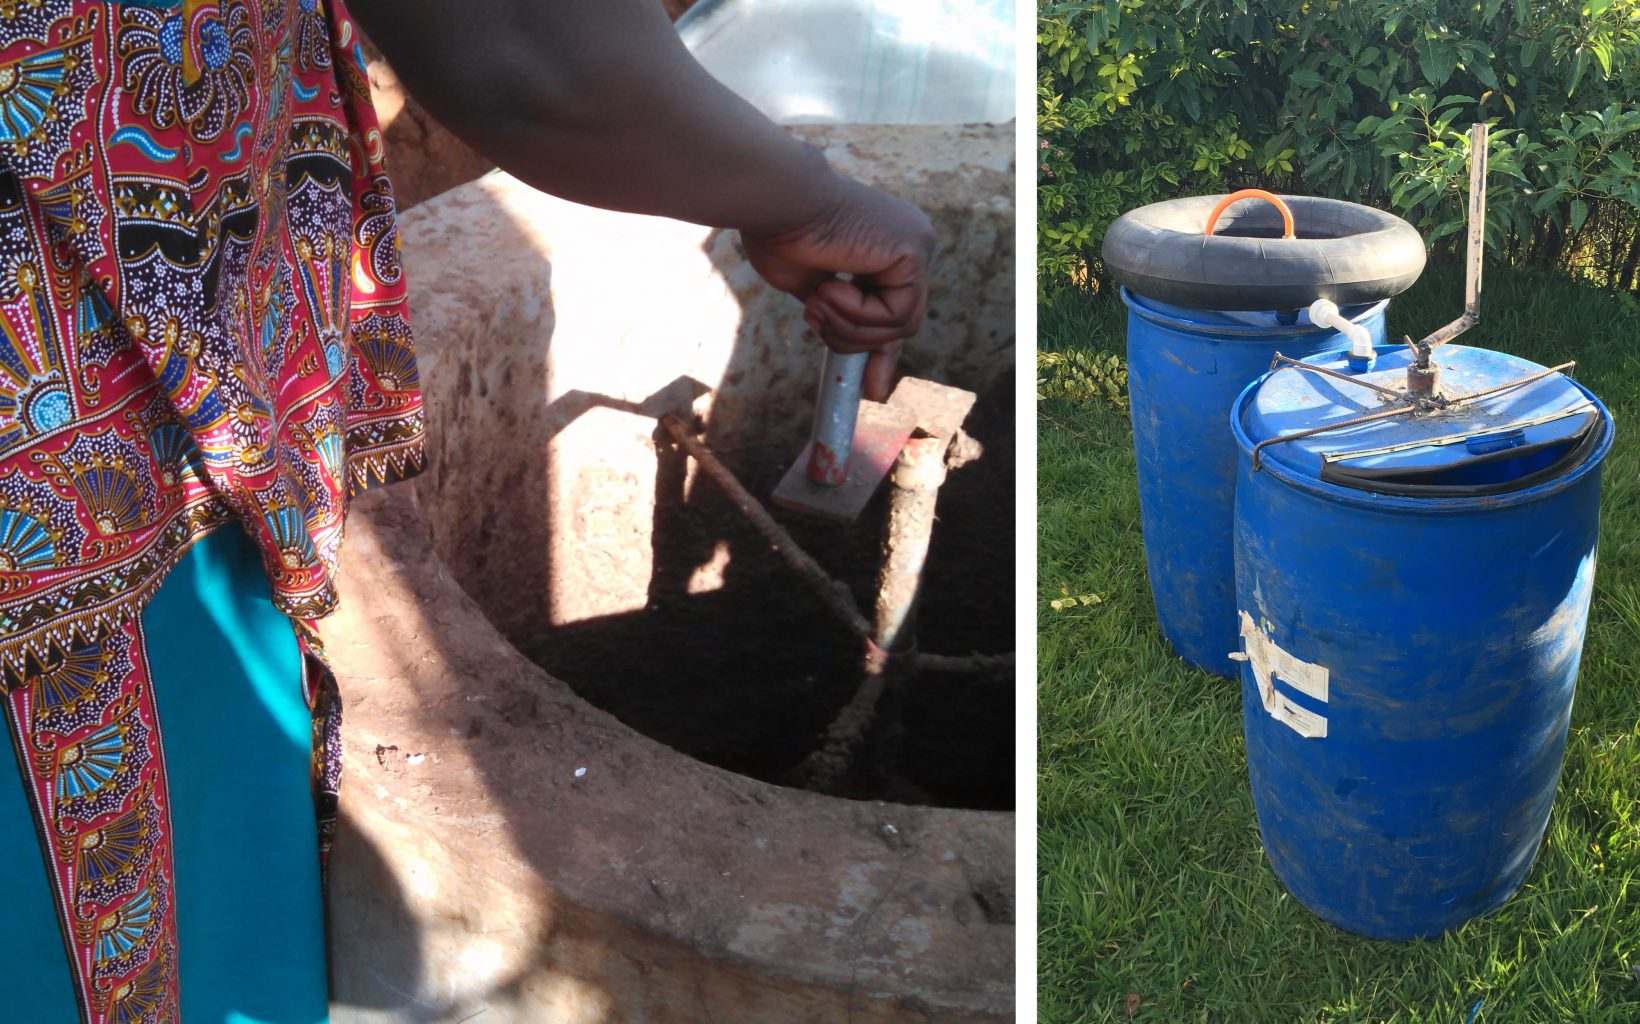 Human-Centered Design of Biogas Solutions for Small Scale Rwandan Farmers